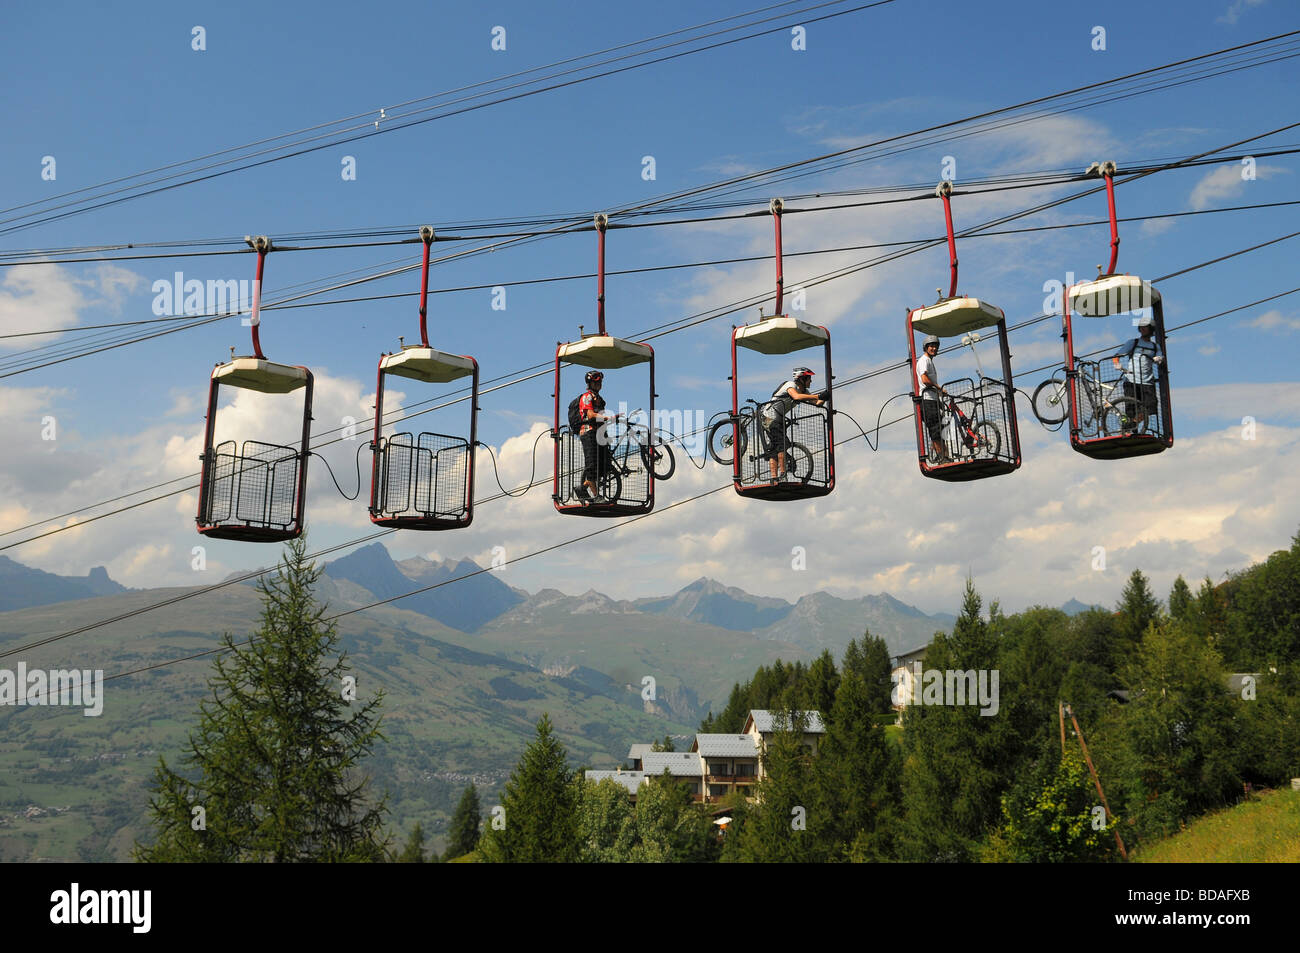 A group of mountain bikers use an unusual ski lift in Les Arcs in the French Alps - Stock Image